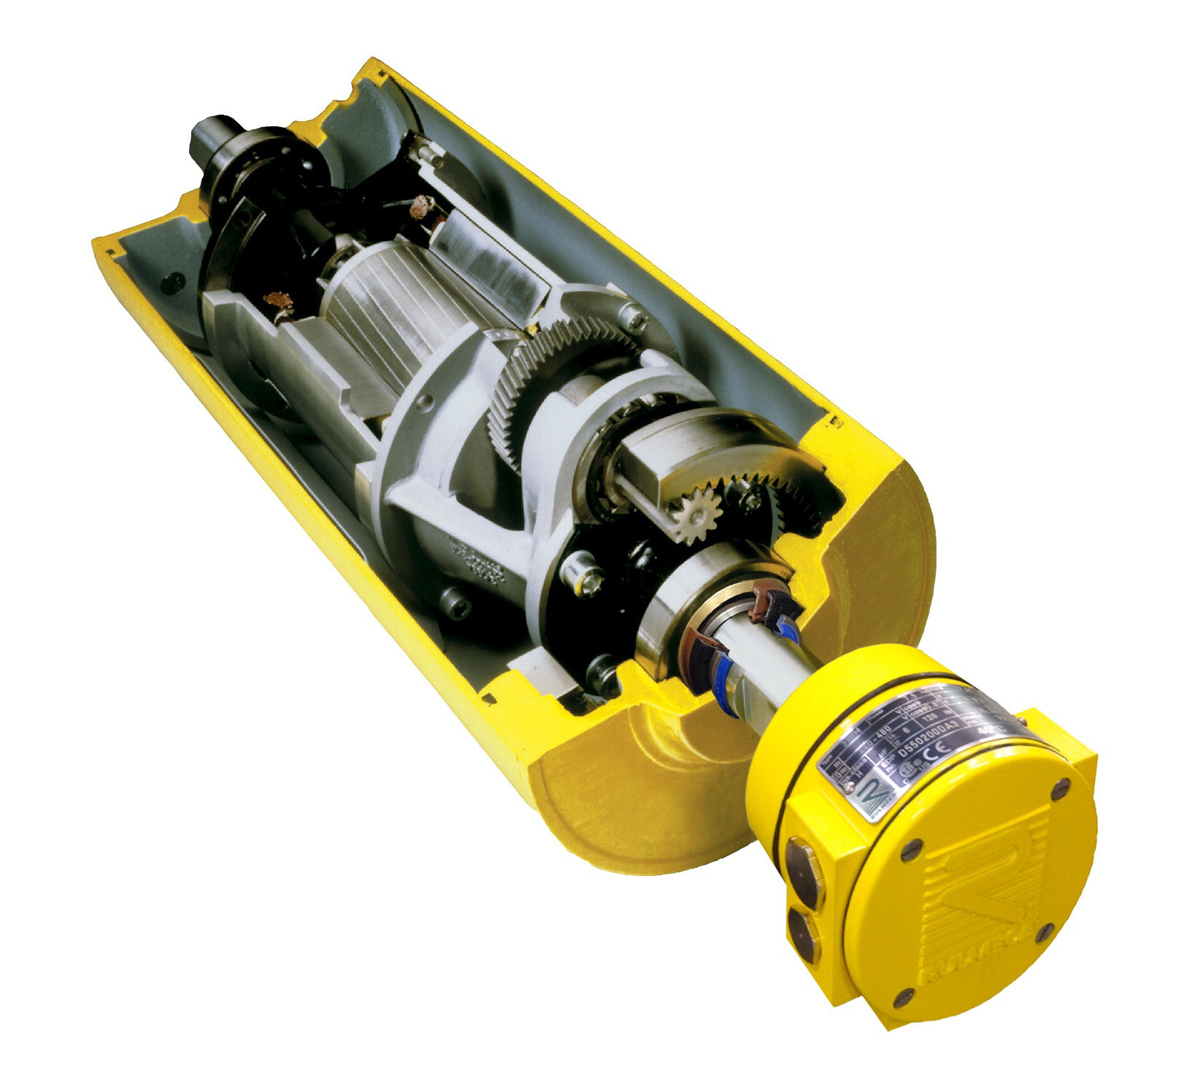 Figure 5: Motorized Pulley hermetically seals motor and gearbox within oil-filled pulley shell.